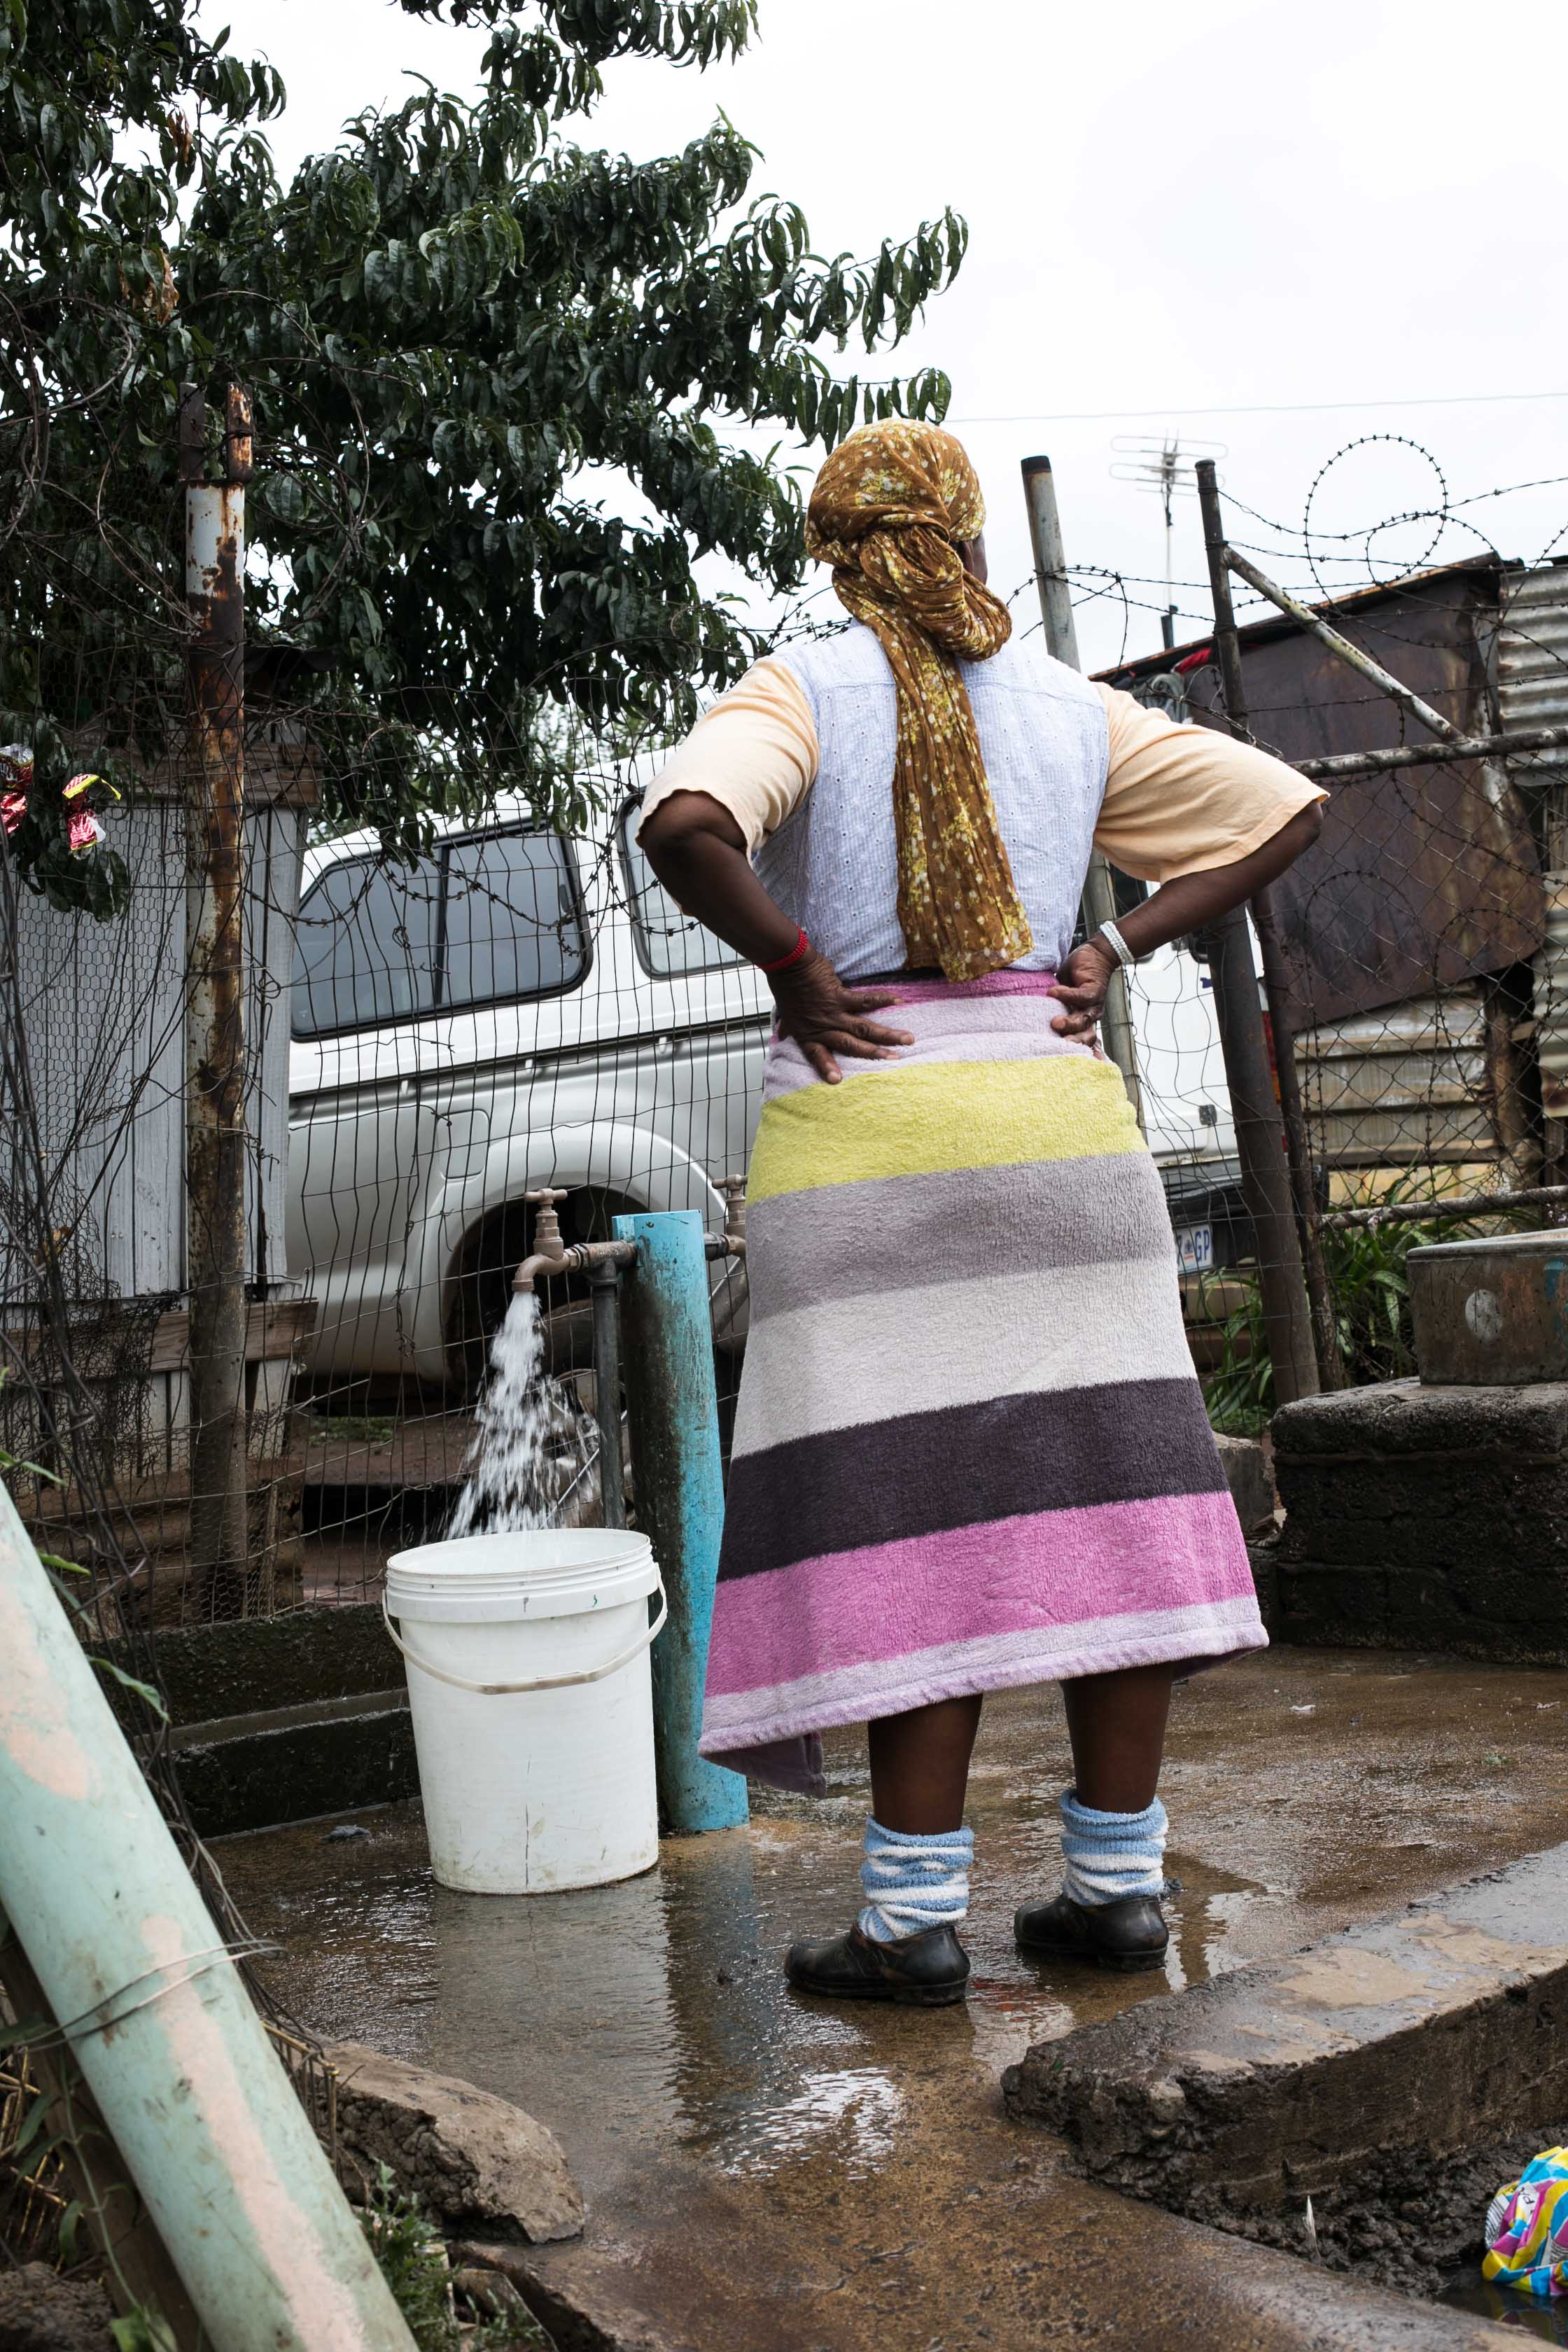 A woman standing at a communal water station shared by thousands of other residents in a community in Soweto.